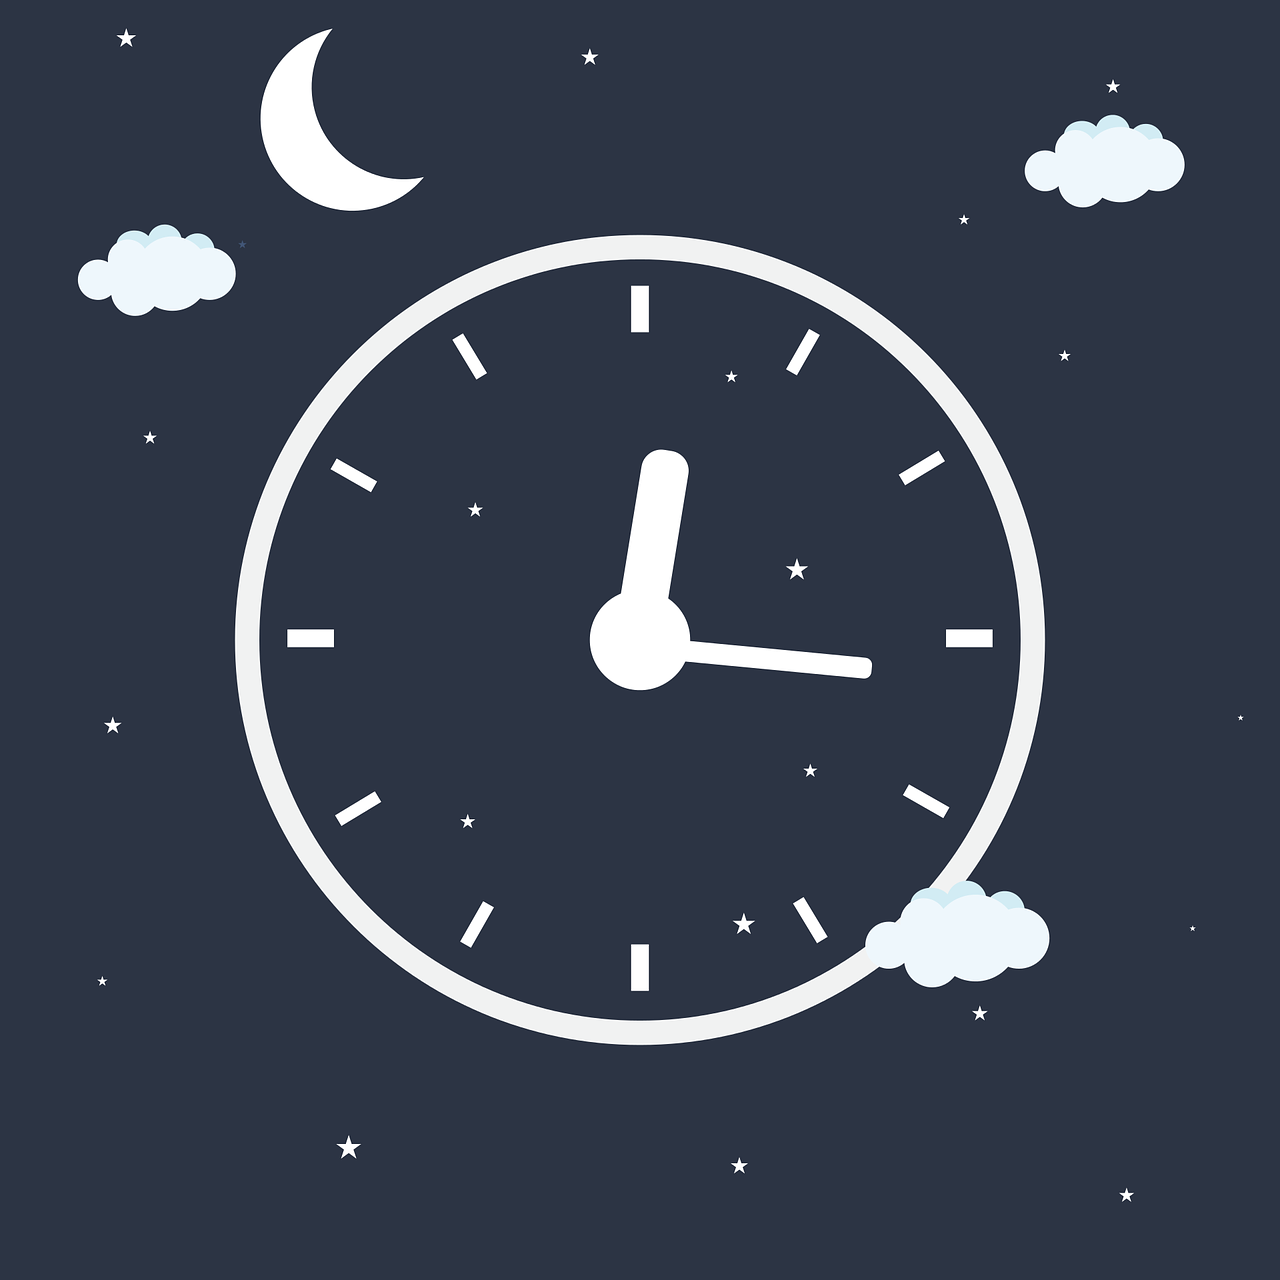 Sleep Hours - What do you know and what don't you know?